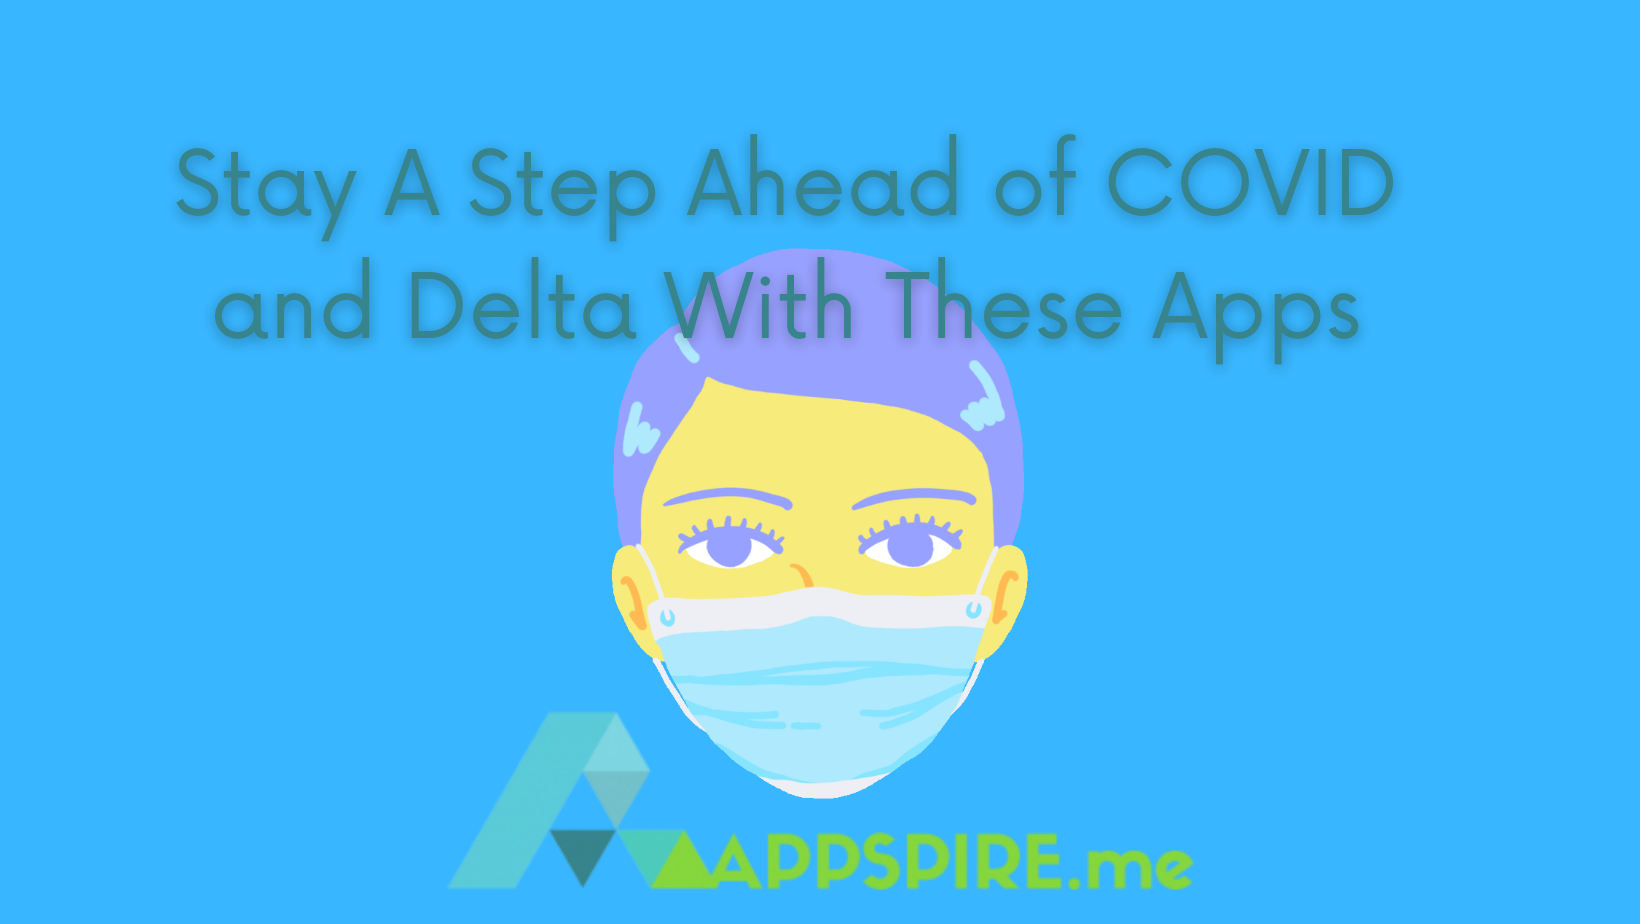 Stay A Step Ahead of COVID With These Apps